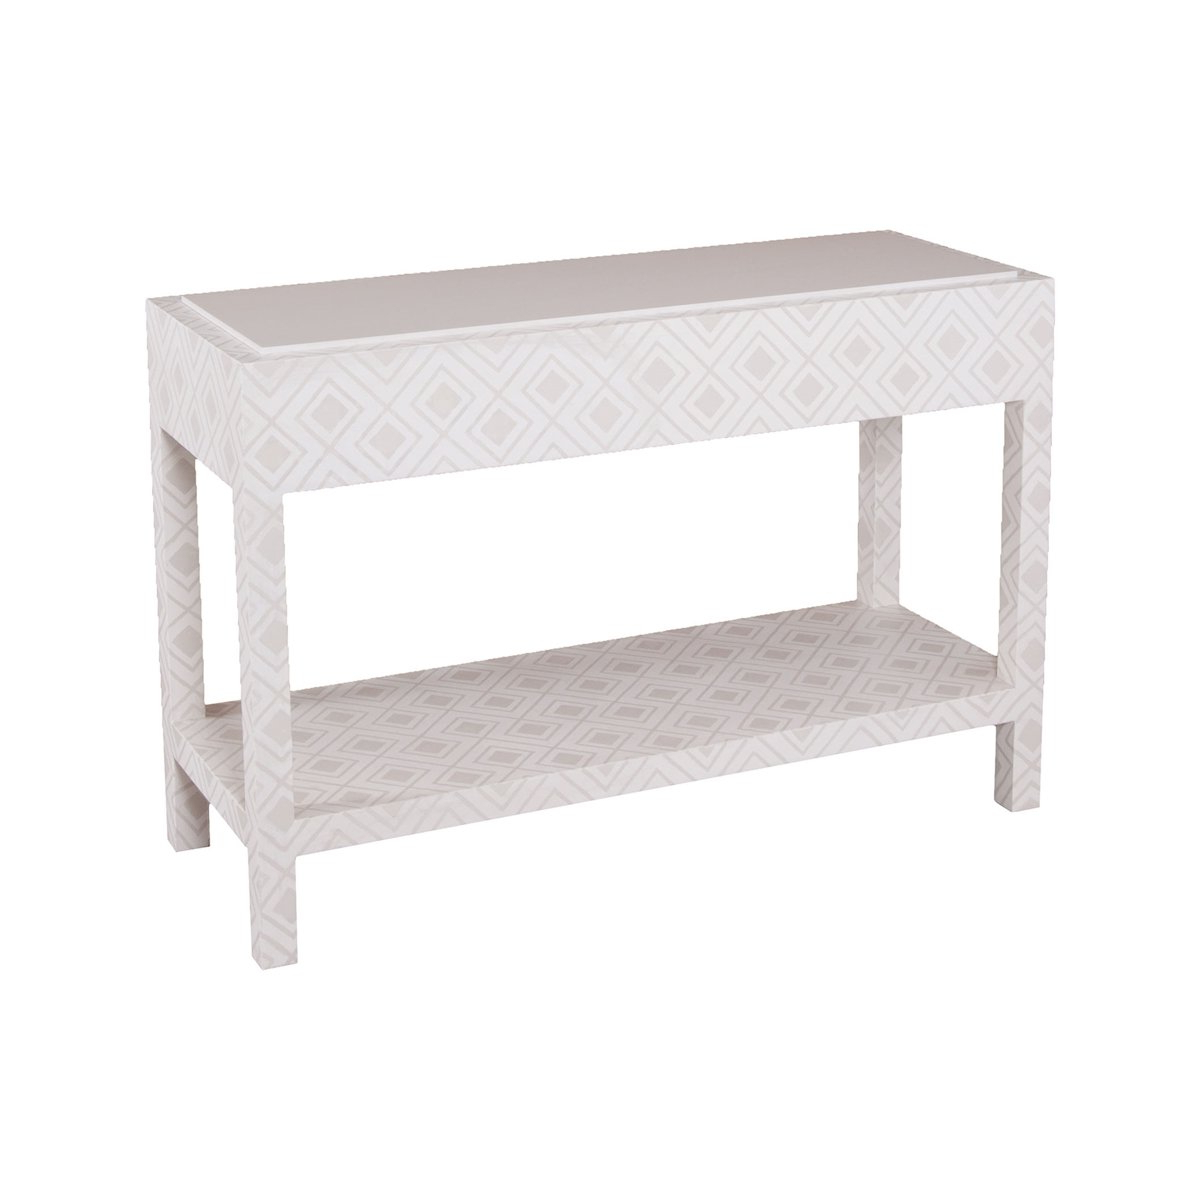 Kent Fabric Wrapped Console | Products In 2018 | Pinterest With Regard To Parsons White Marble Top & Stainless Steel Base 48X16 Console Tables (Gallery 18 of 20)